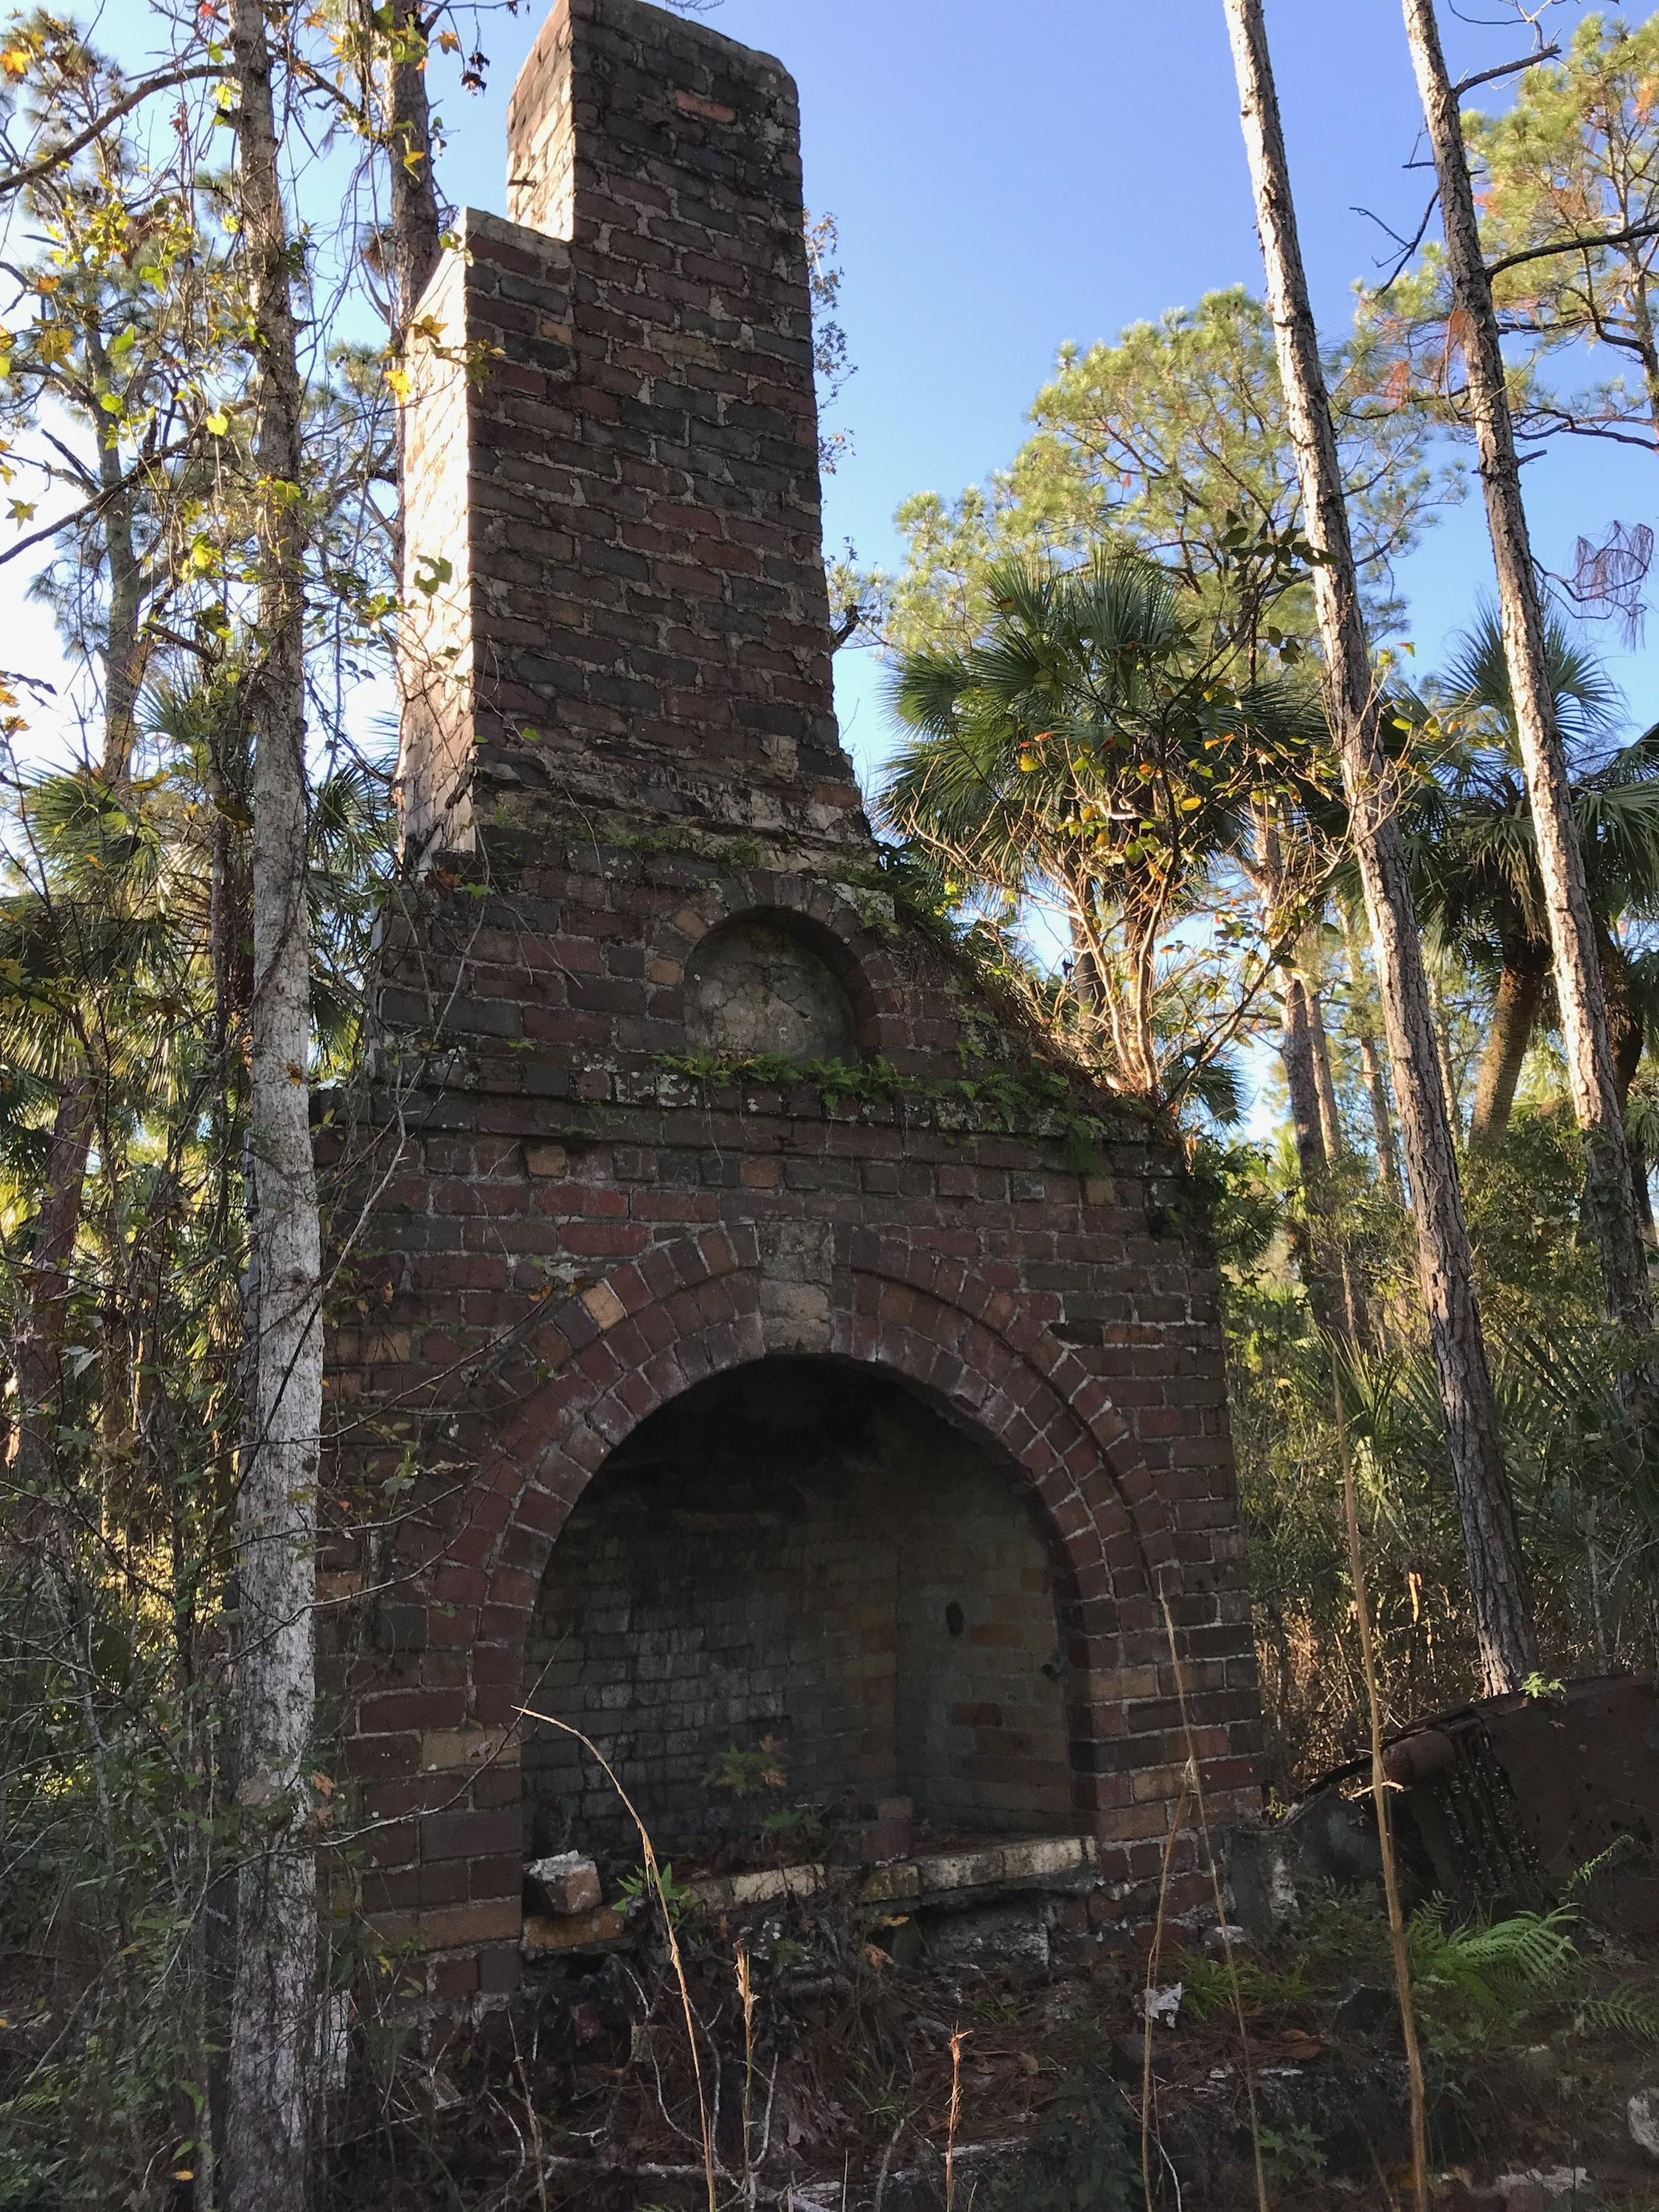 Old Chimney - Just part of the chimney from an old hunting camp - N28 26.708 W80 56.982